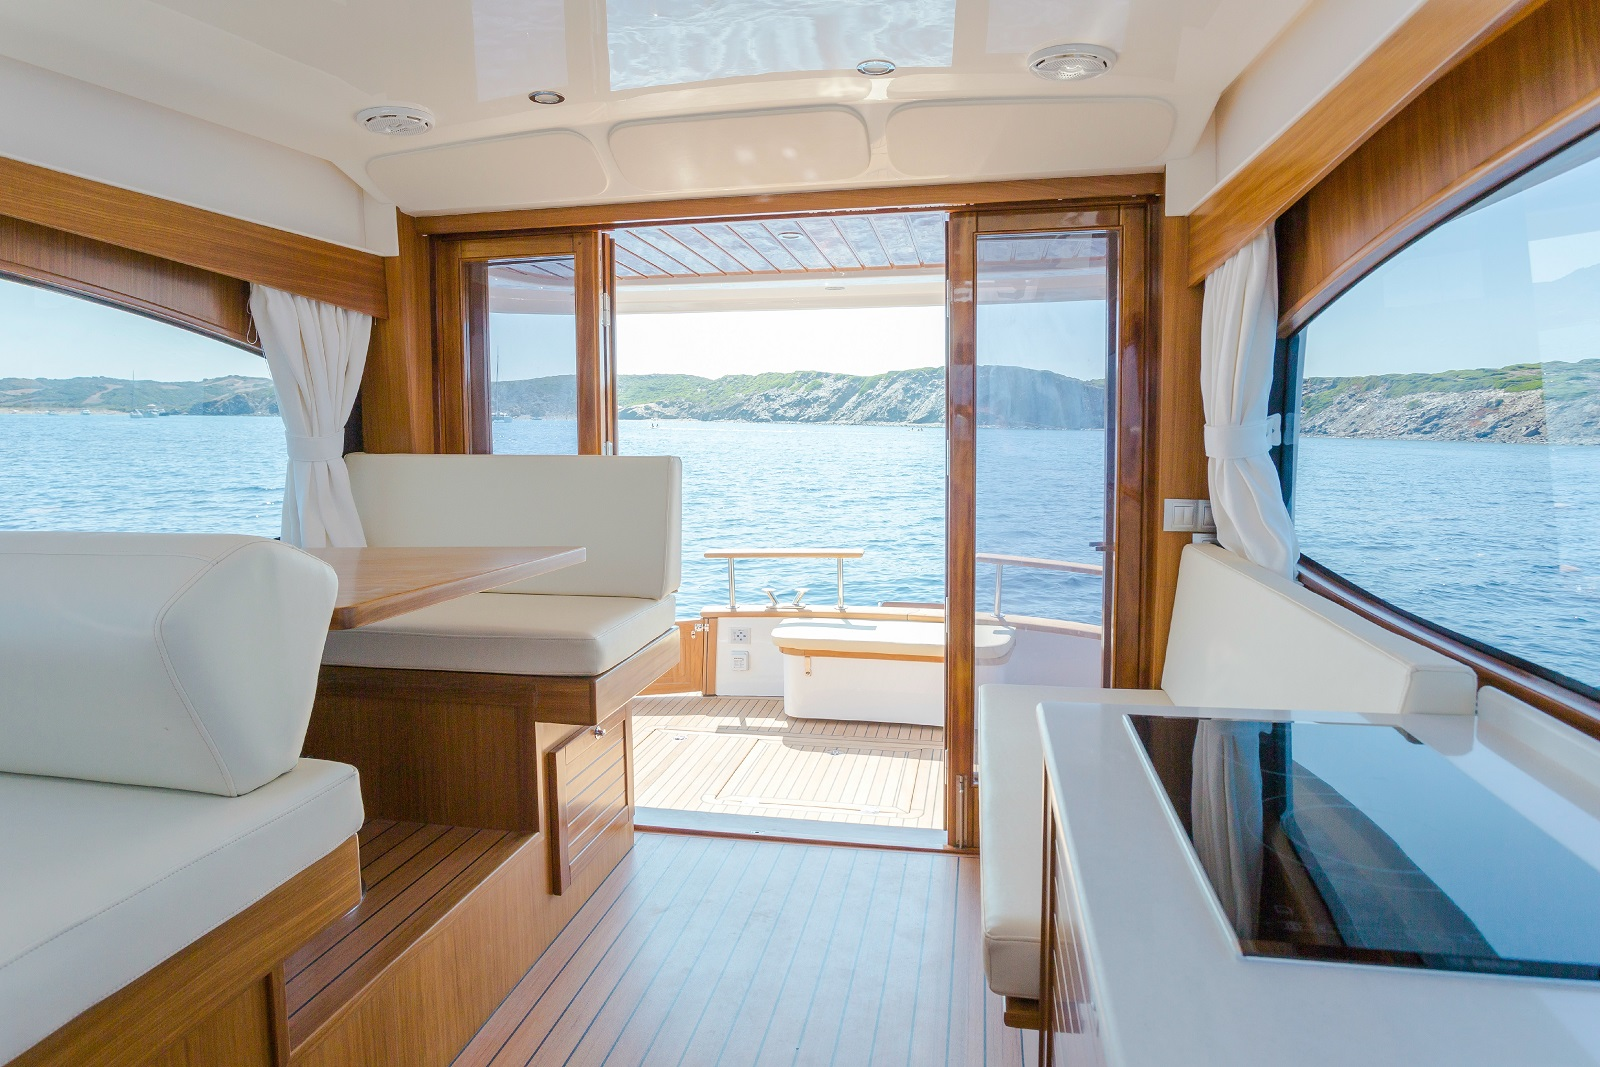 Minorca Islander 34 for sale - salon and galley